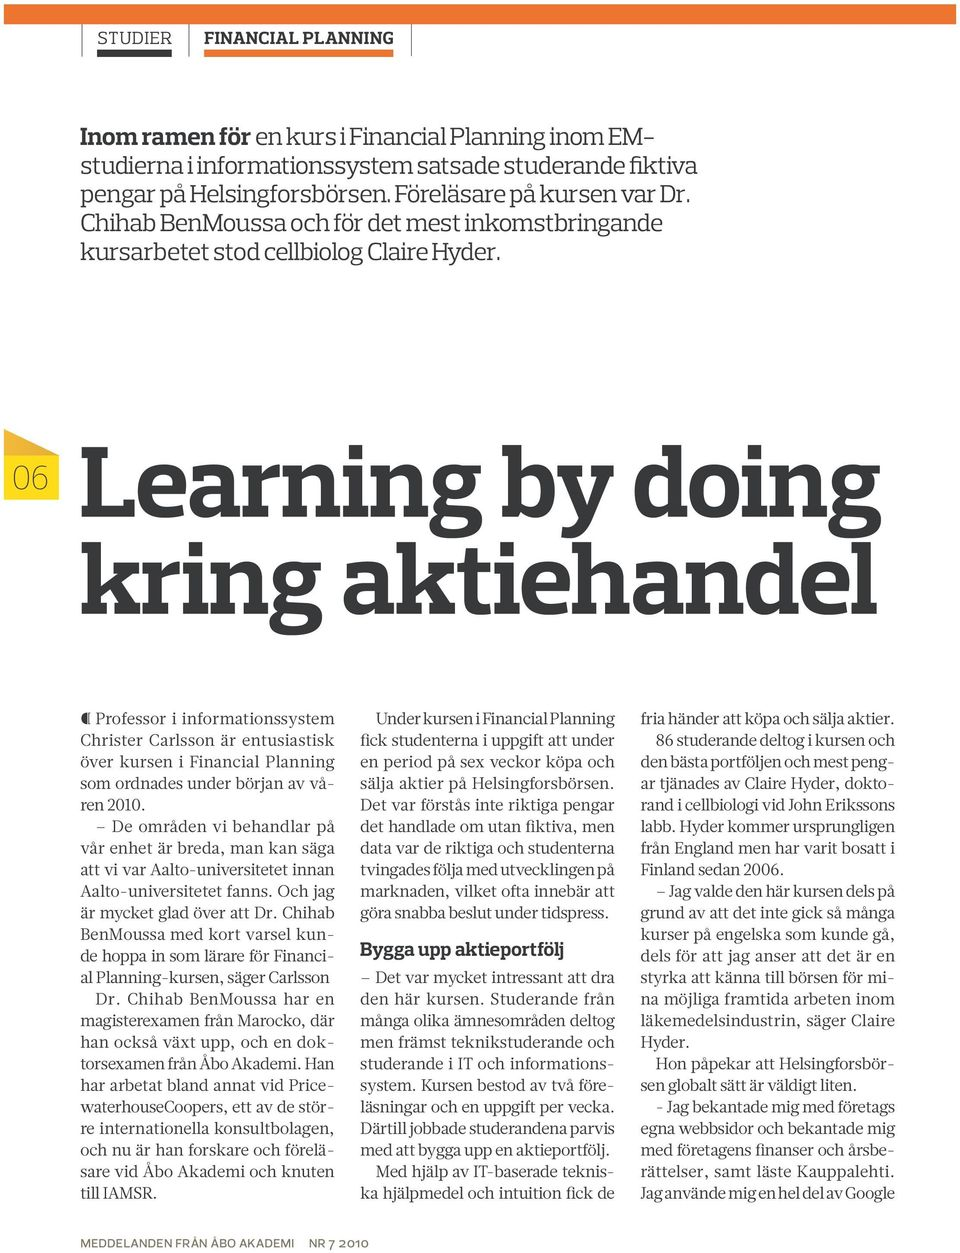 06 Learning by doing kring aktiehandel Professor i informationssystem Christer Carlsson är entusiastisk över kursen i Financial Planning som ordnades under början av våren 2010.